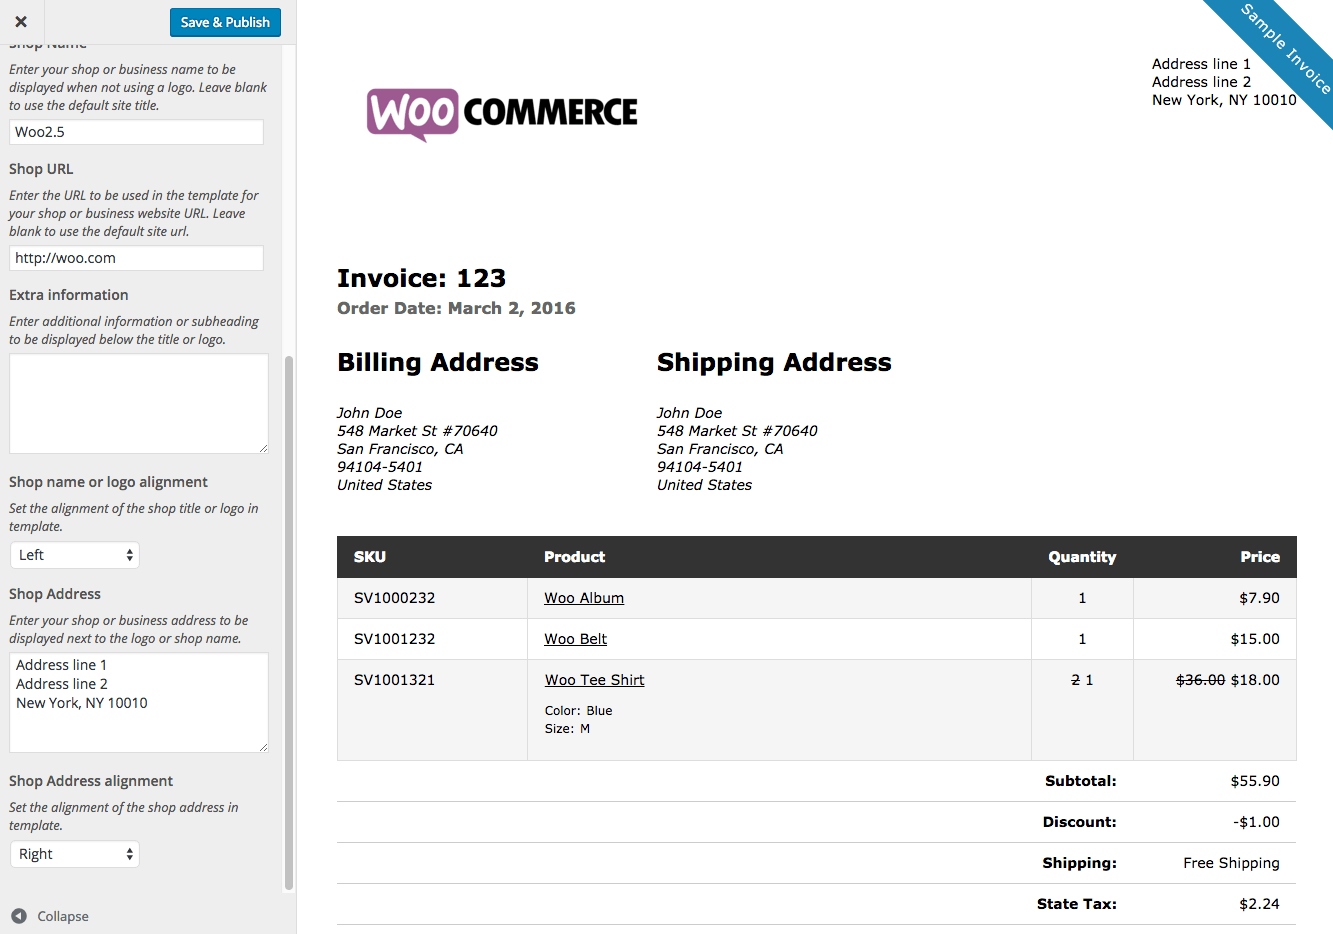 Aaaaeroincus  Terrific Woocommerce Print Invoices Amp Packing Lists  Woocommerce Docs With Likable Woocommerce Print Invoices  Packing Lists Customizer With Astounding Gross Receipt Also Sample Letter For Lost Receipt In Addition Other Words For Receipt And Tesco Store Number On Receipt As Well As Proximiant Digital Receipts Additionally Nordstrom Receipt From Docswoocommercecom With Aaaaeroincus  Likable Woocommerce Print Invoices Amp Packing Lists  Woocommerce Docs With Astounding Woocommerce Print Invoices  Packing Lists Customizer And Terrific Gross Receipt Also Sample Letter For Lost Receipt In Addition Other Words For Receipt From Docswoocommercecom